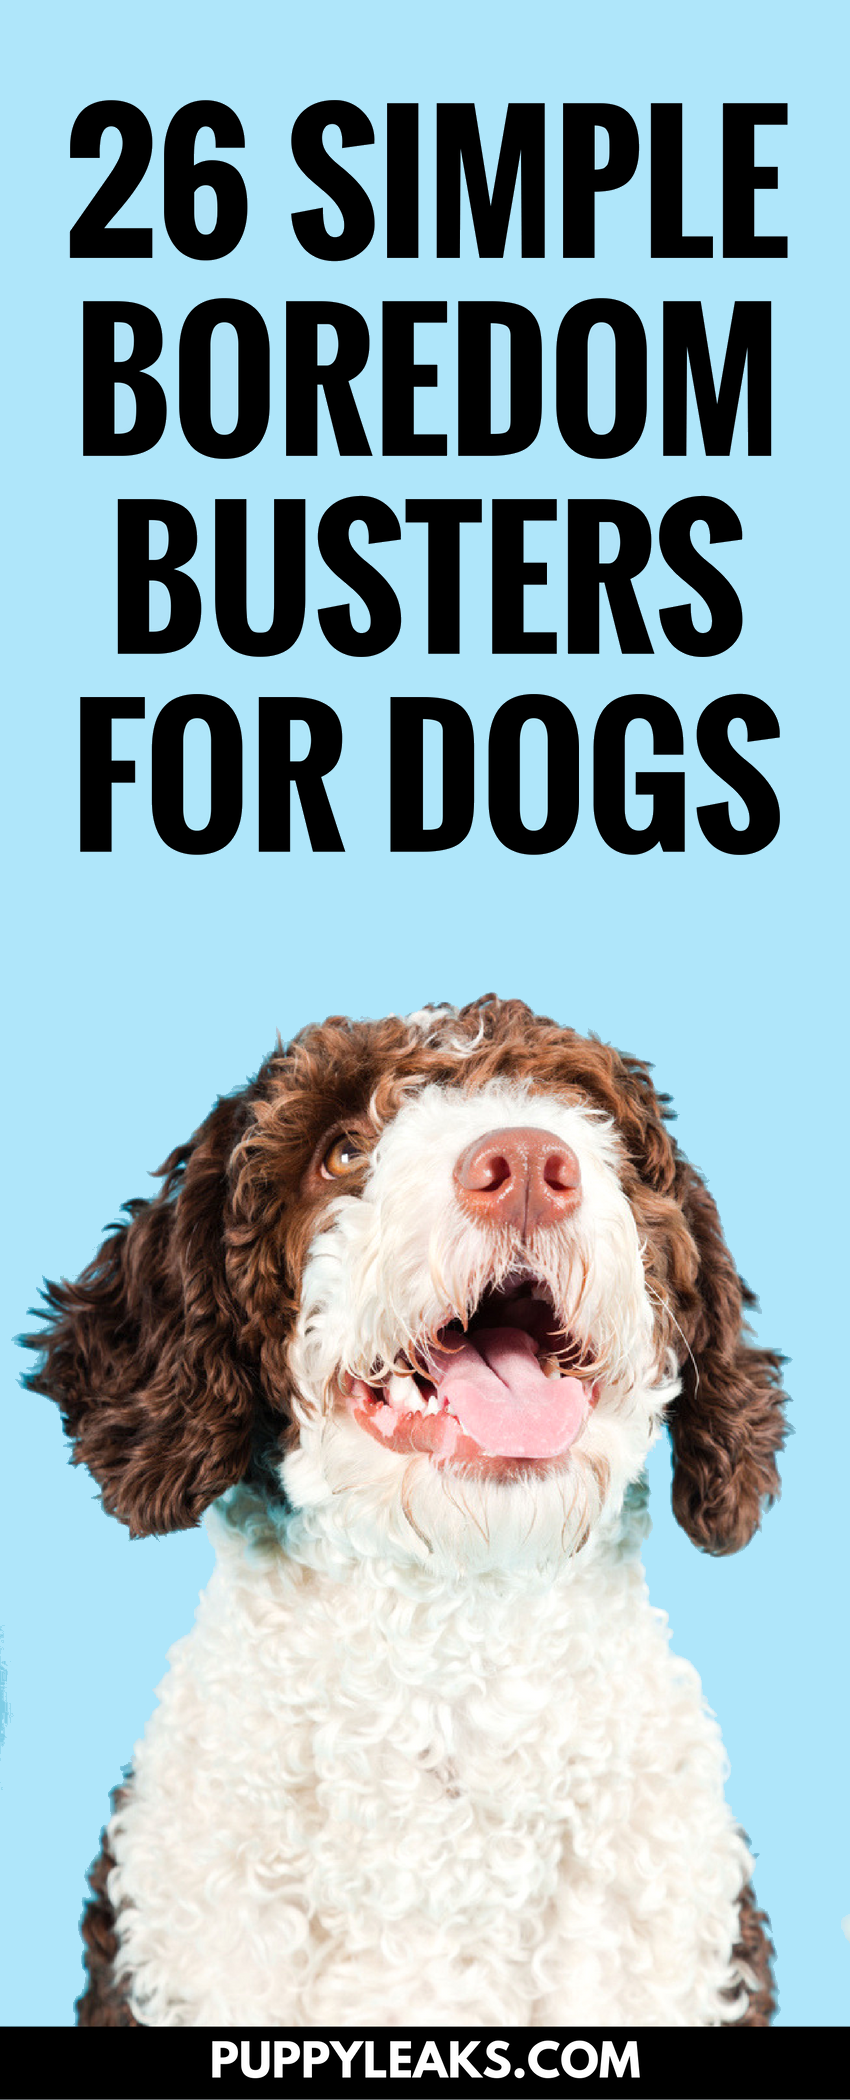 Is your dog bored? Need some simple ways to keep your dog busy and entertained? Check out our list of 26 quick and simple ways to relieve dog boredom. These boredom busters will provide your dog with plenty of mental stimulation and exercise. #dogs #dogtips #dogcare #dog #lifehacks #doglovers #dogadvice